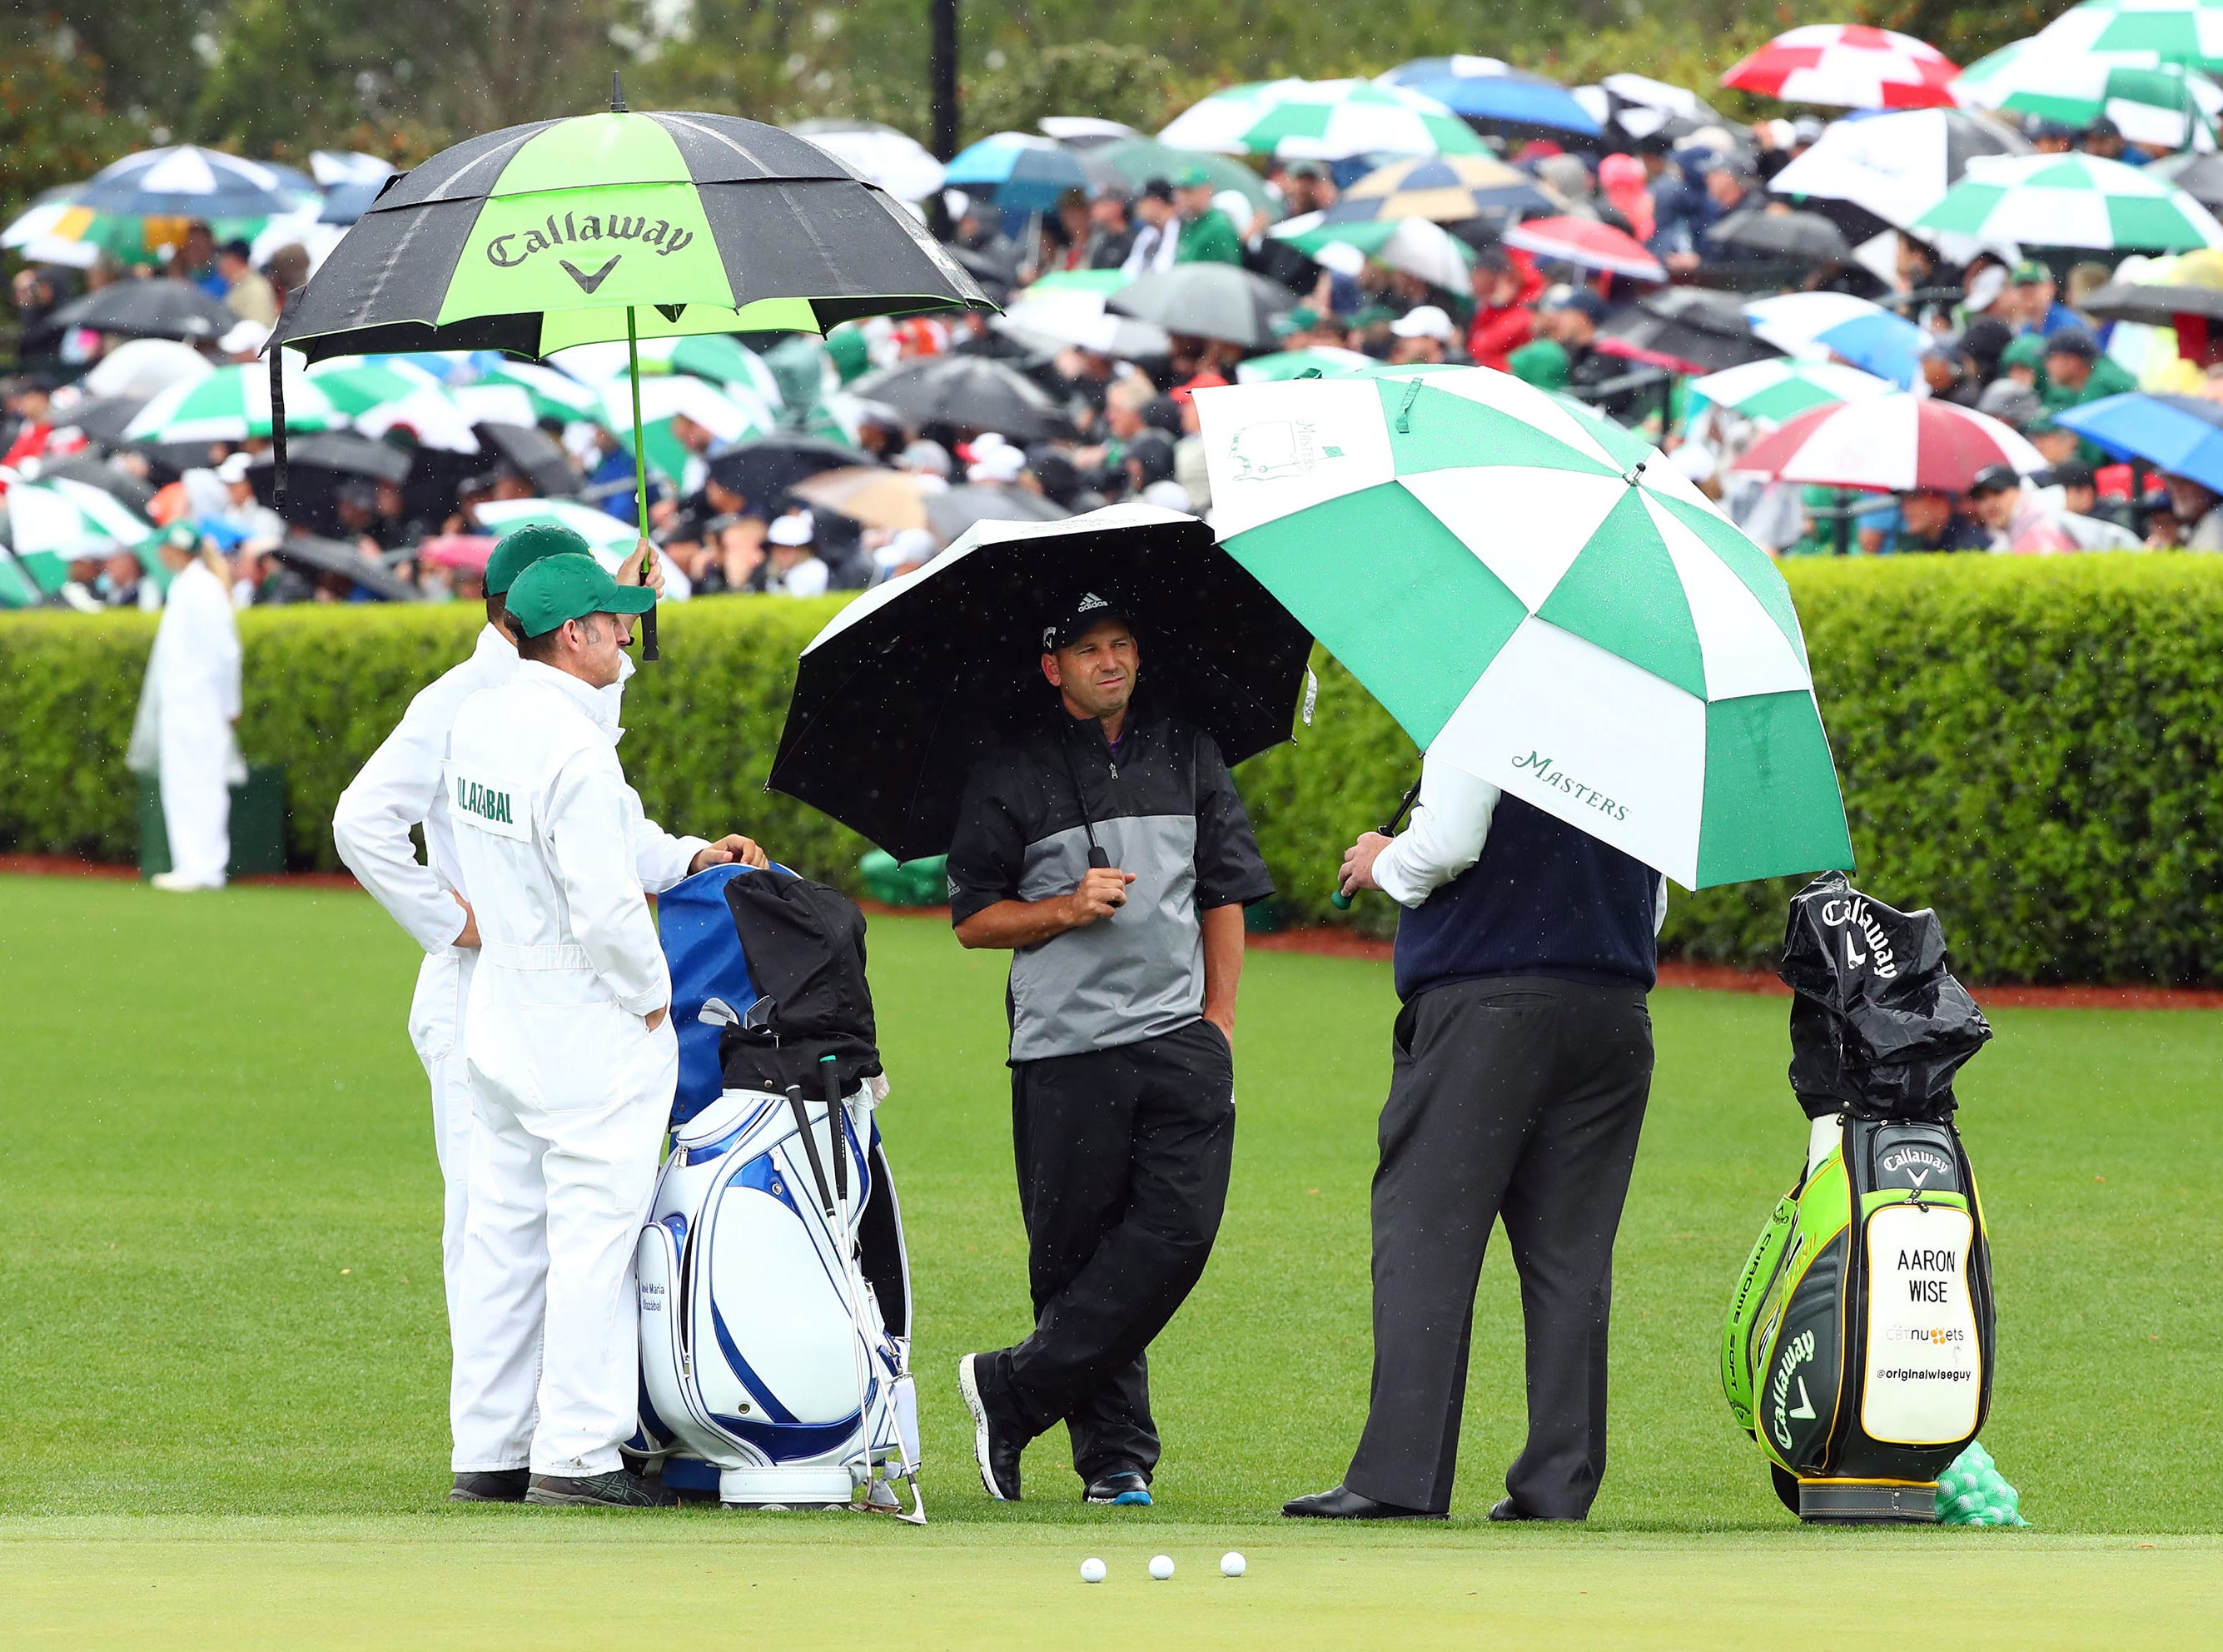 Apr 9, 2019; Augusta, GA, USA; Sergio Garcia of Spain talks with John Paramor, the European Tour's chief rules official (right) at the practice facility during a practice round for The Masters golf tournament at Augusta National Golf Club. Mandatory Credit: Rob Schumacher-USA TODAY Sports